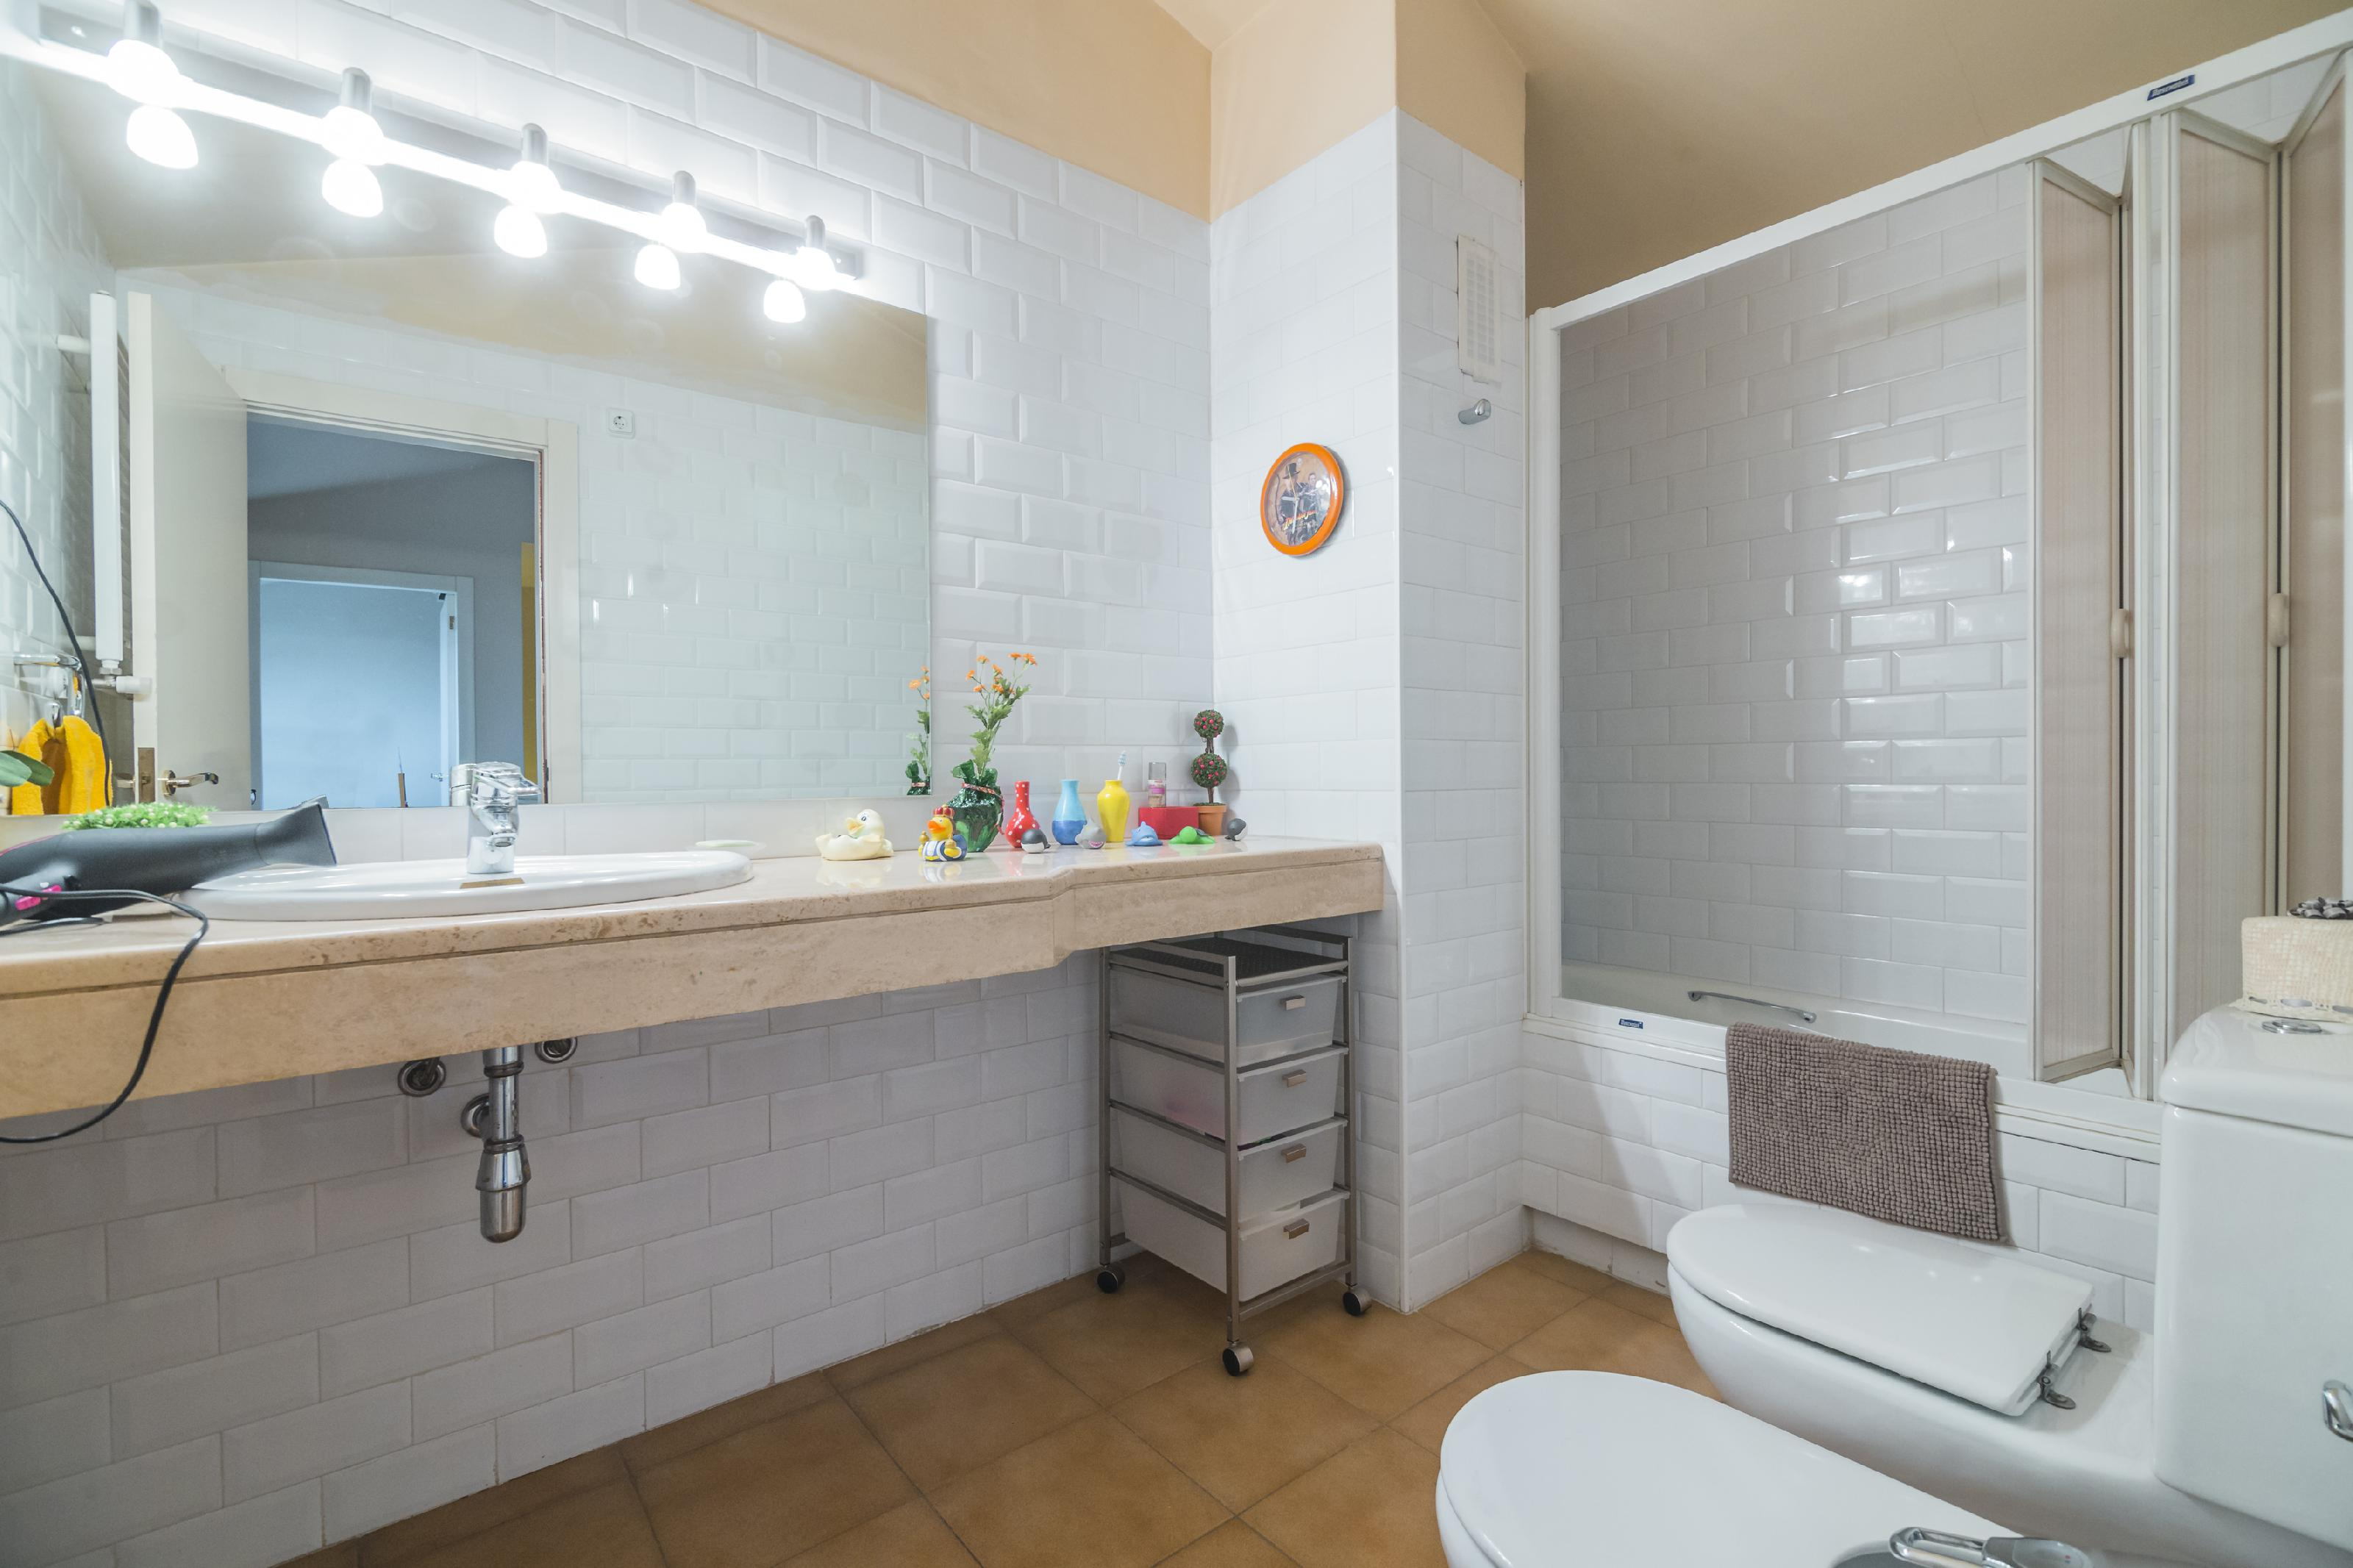 232637 Penthouse for sale in Sarrià-Sant Gervasi, Sant Gervasi-Galvany 9